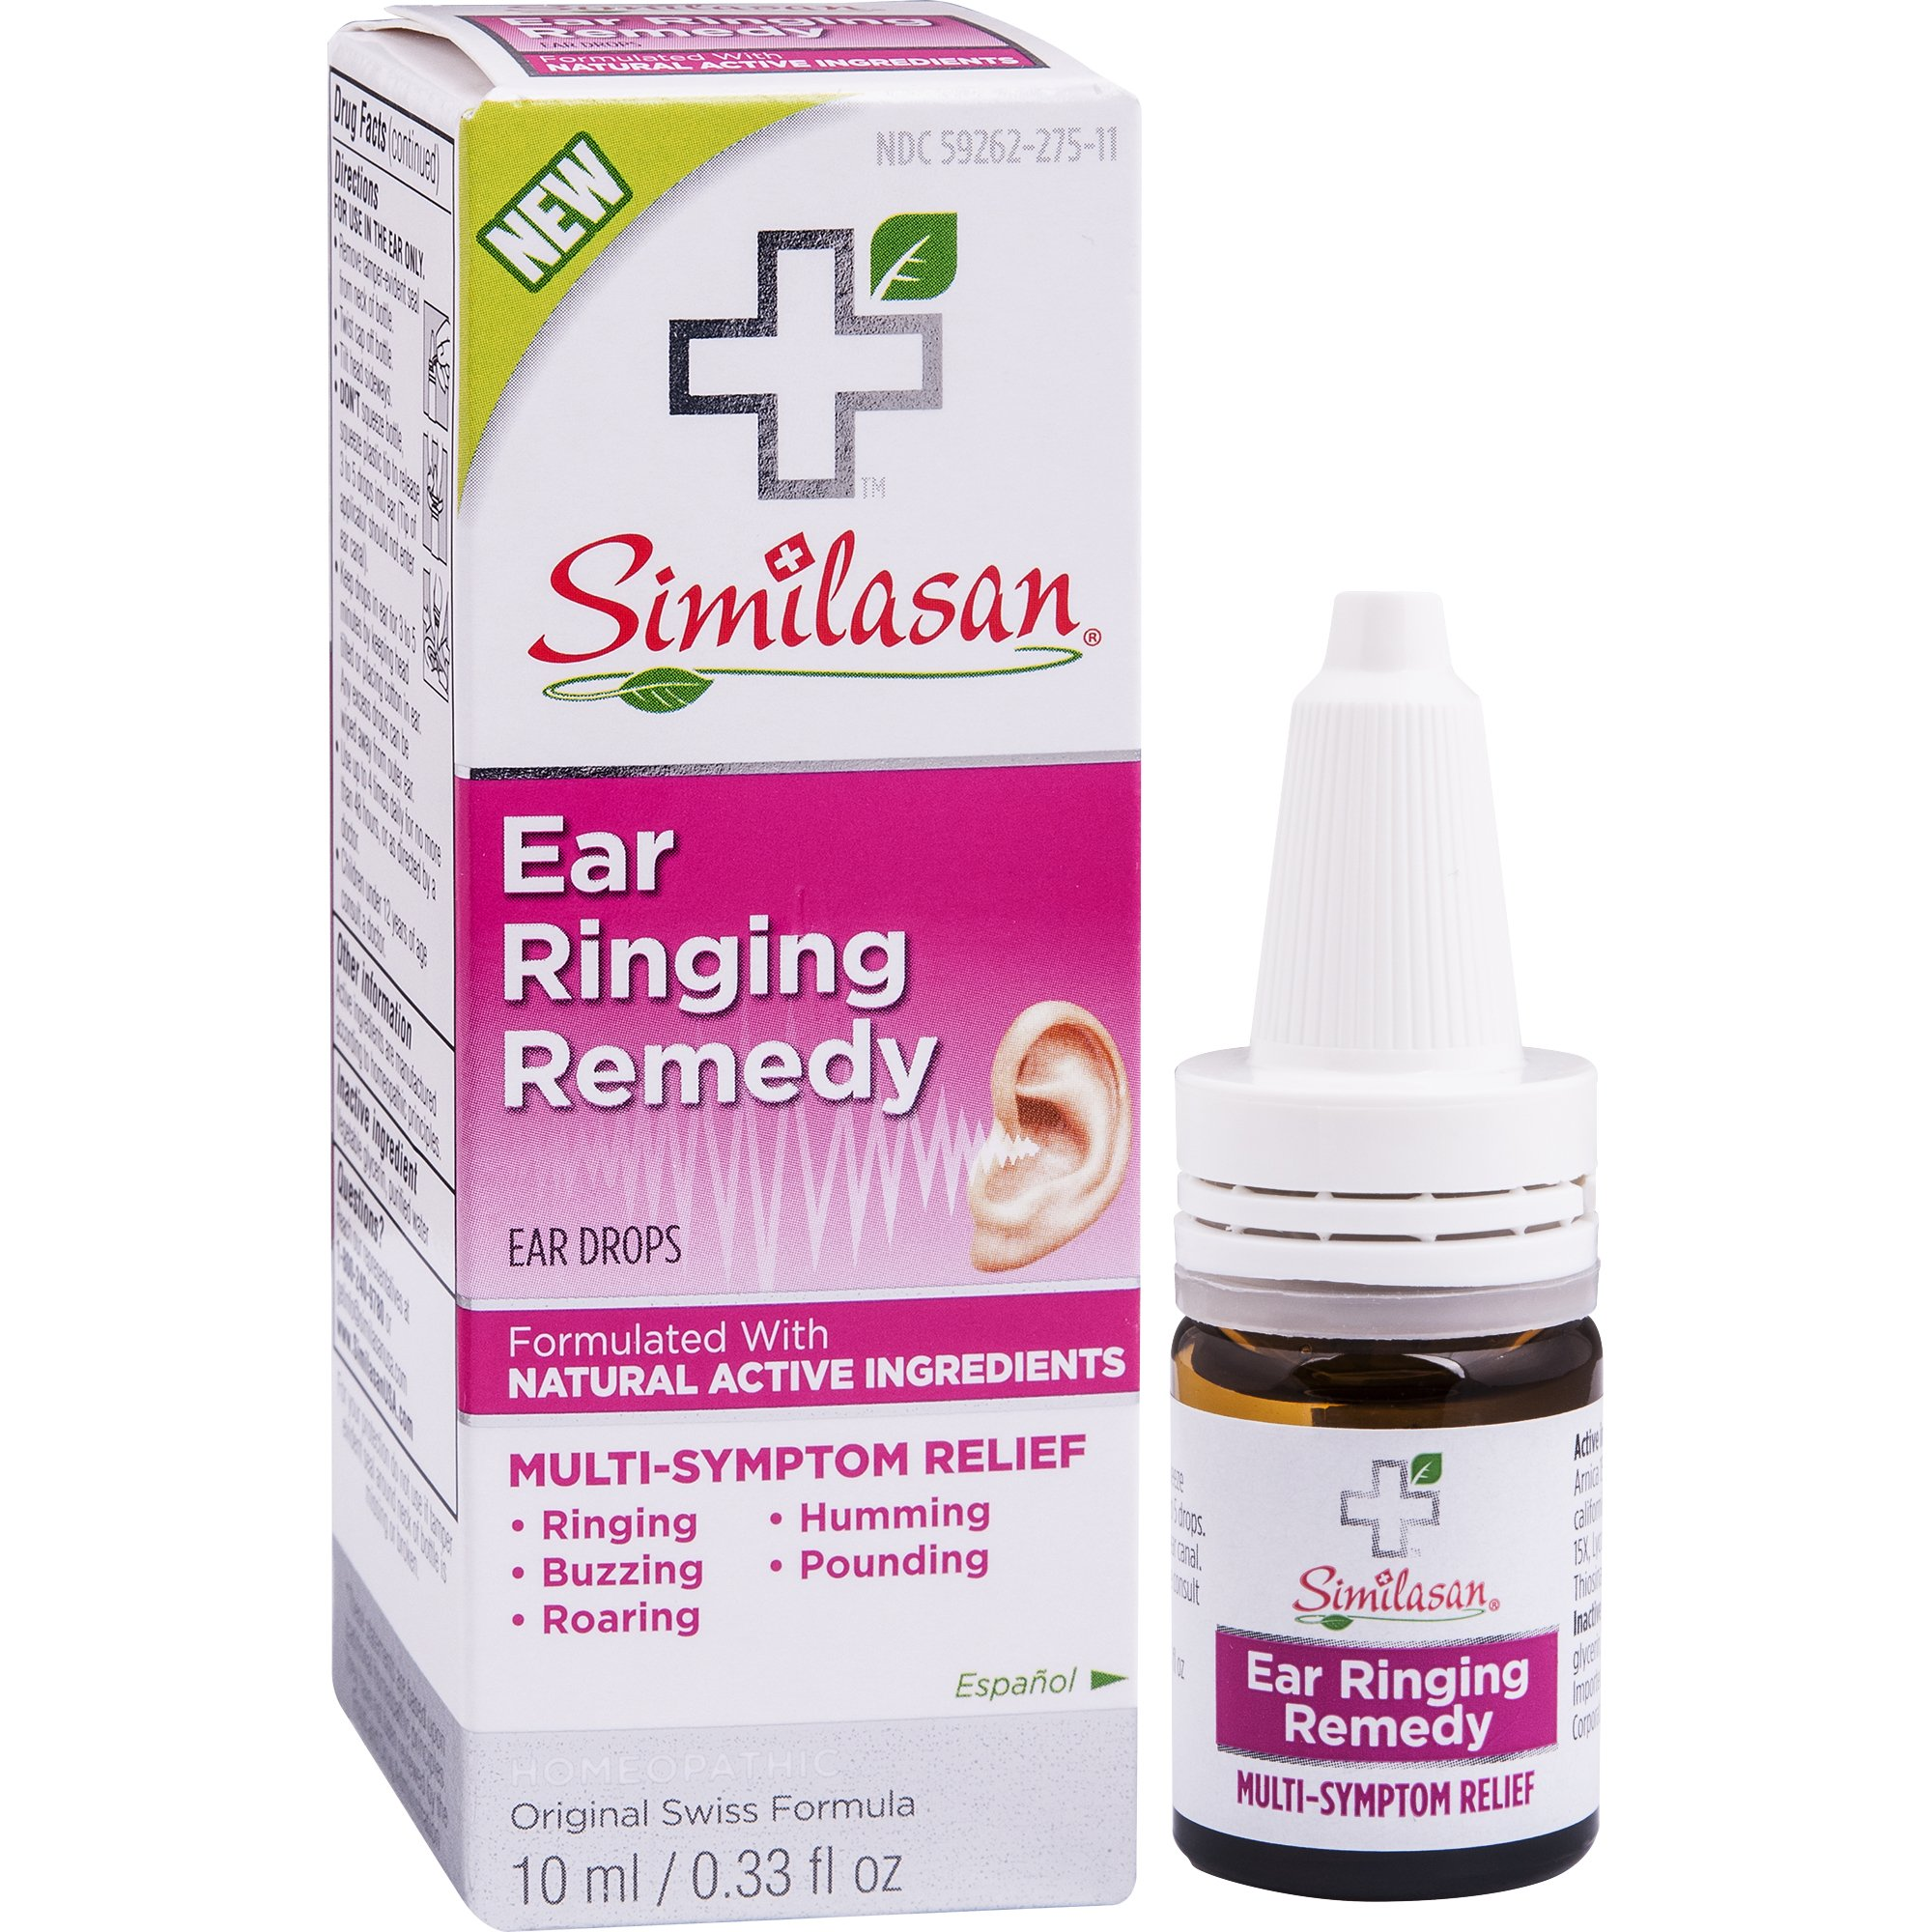 Similasan Ear Ringing Remedy Drops 0.33 Ounce, for Temporary Multi-Symptom Relief from Noise in The Ears, Ringing Ears, Buzzing Ears, Roaring Ears, Humming Ears, and Other Sounds in The Ears